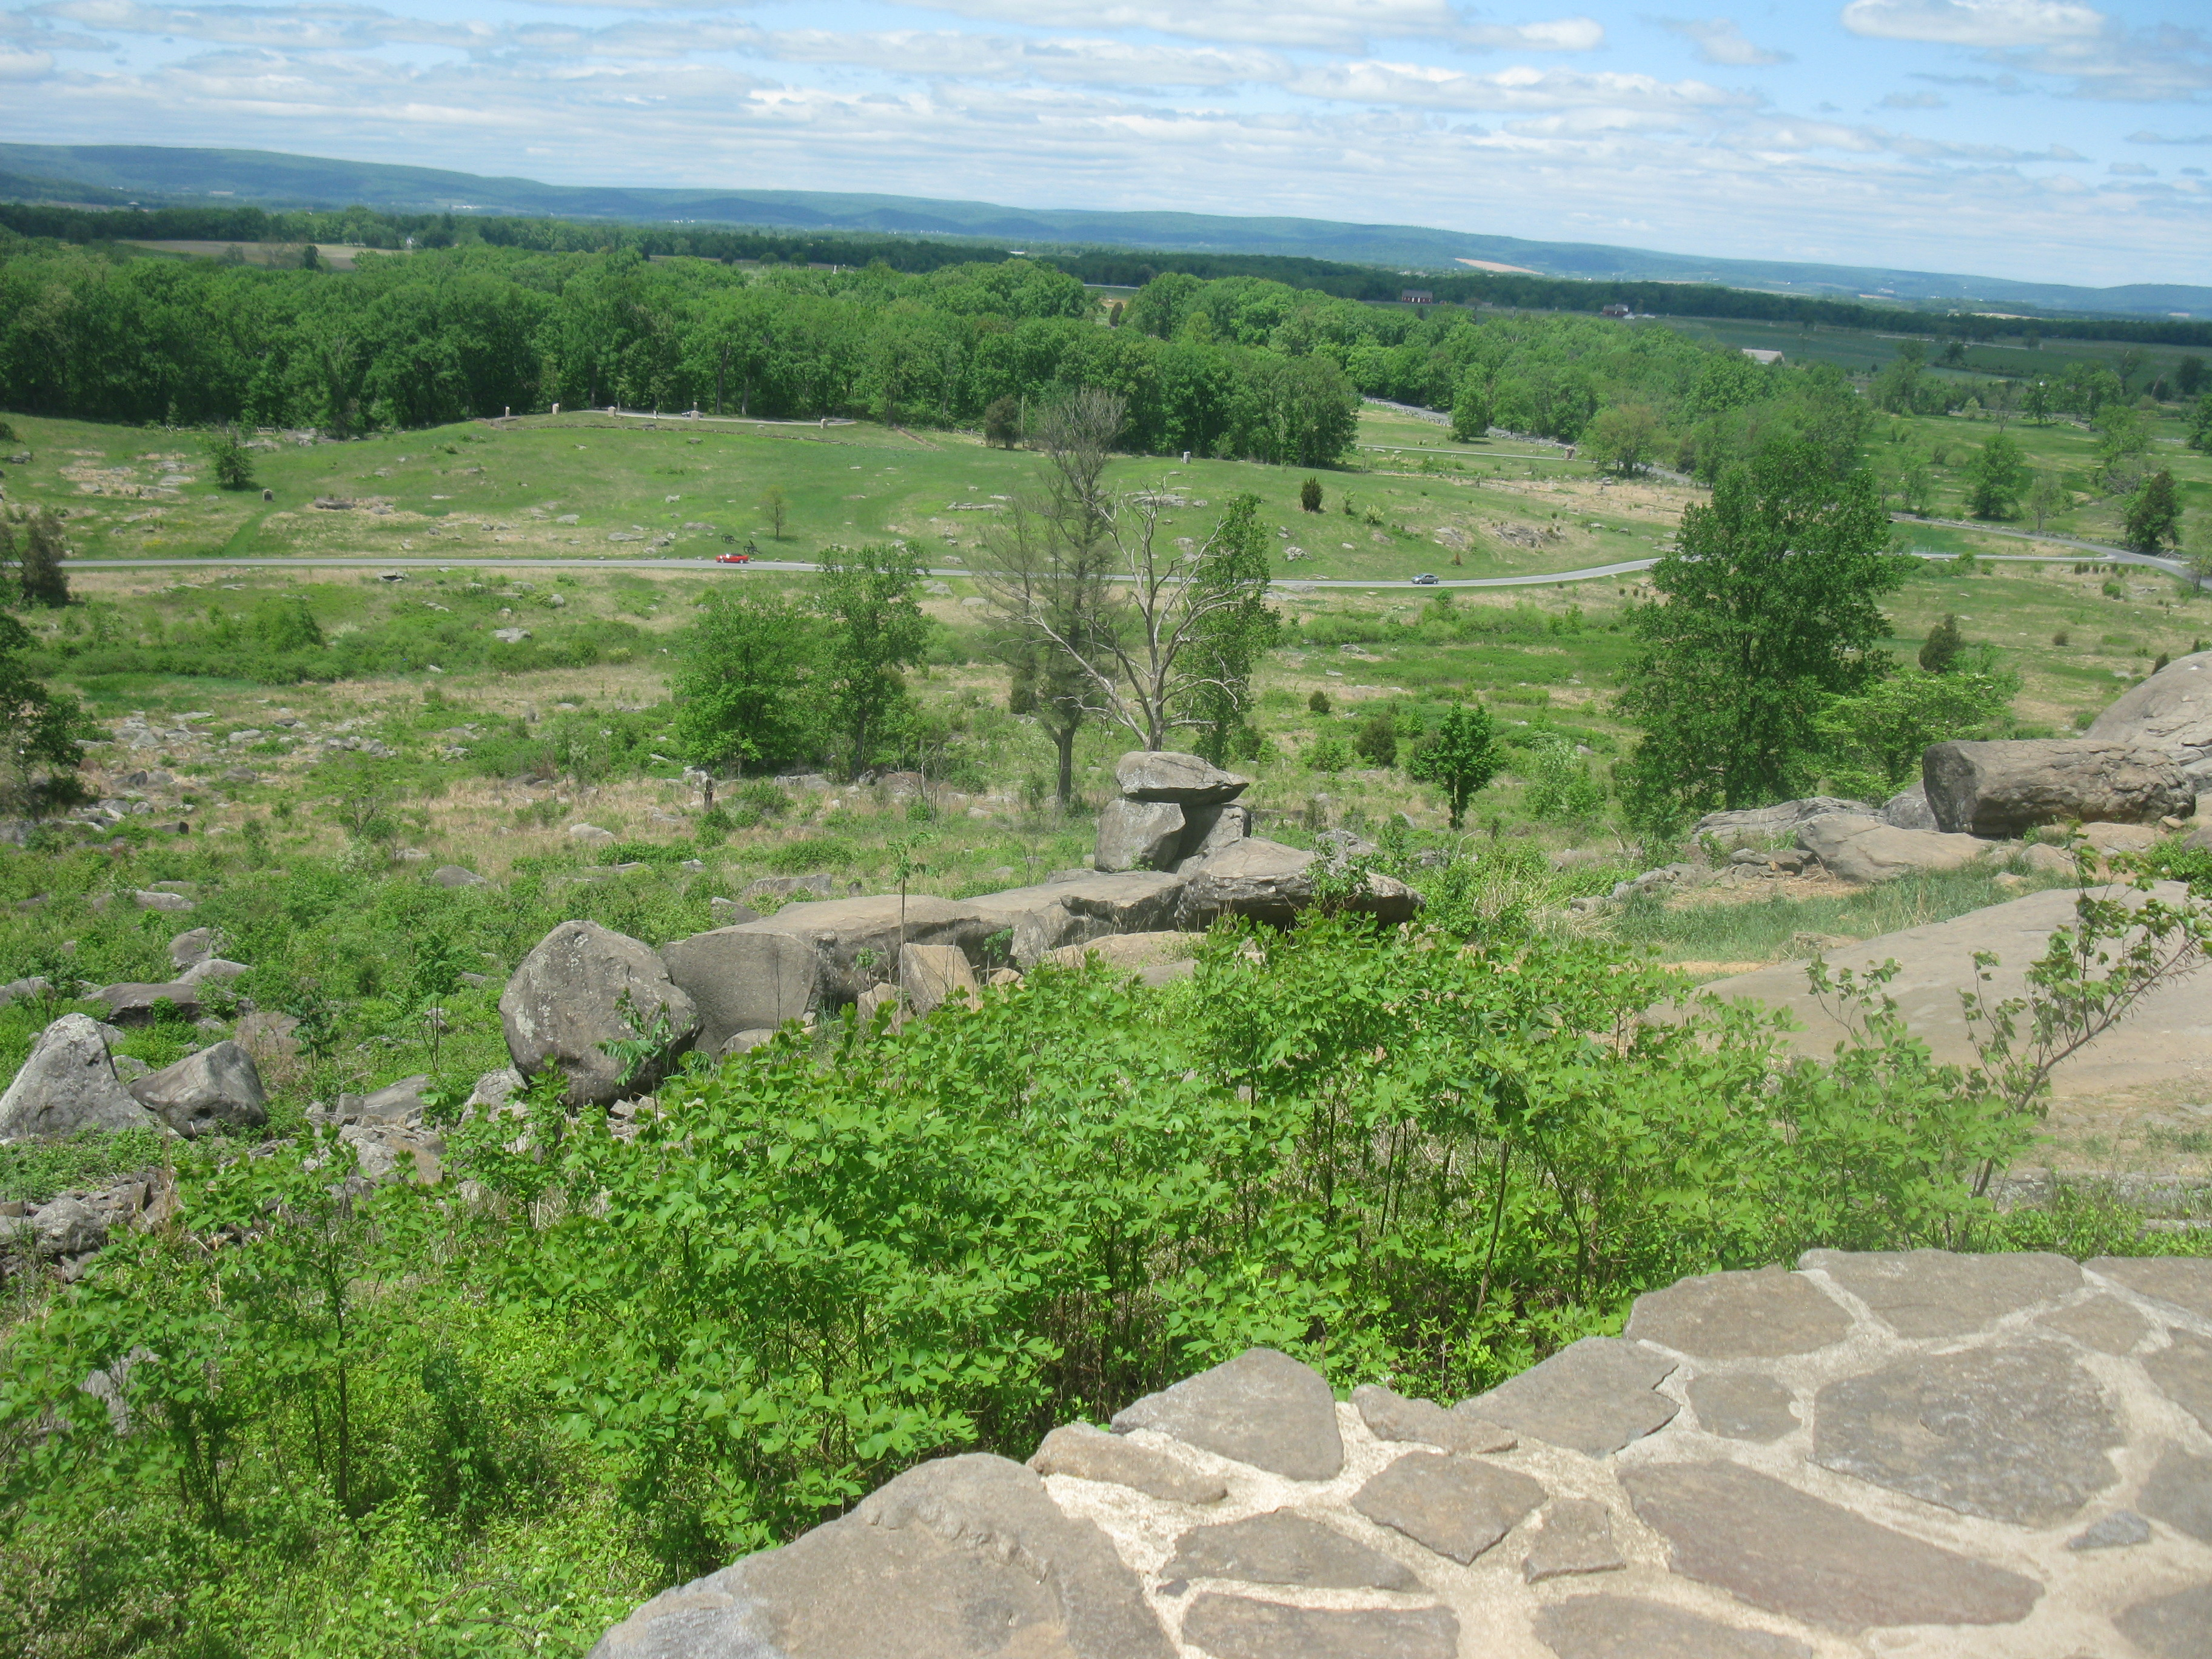 Little Round Top overlooking the wheat field and peach orchard